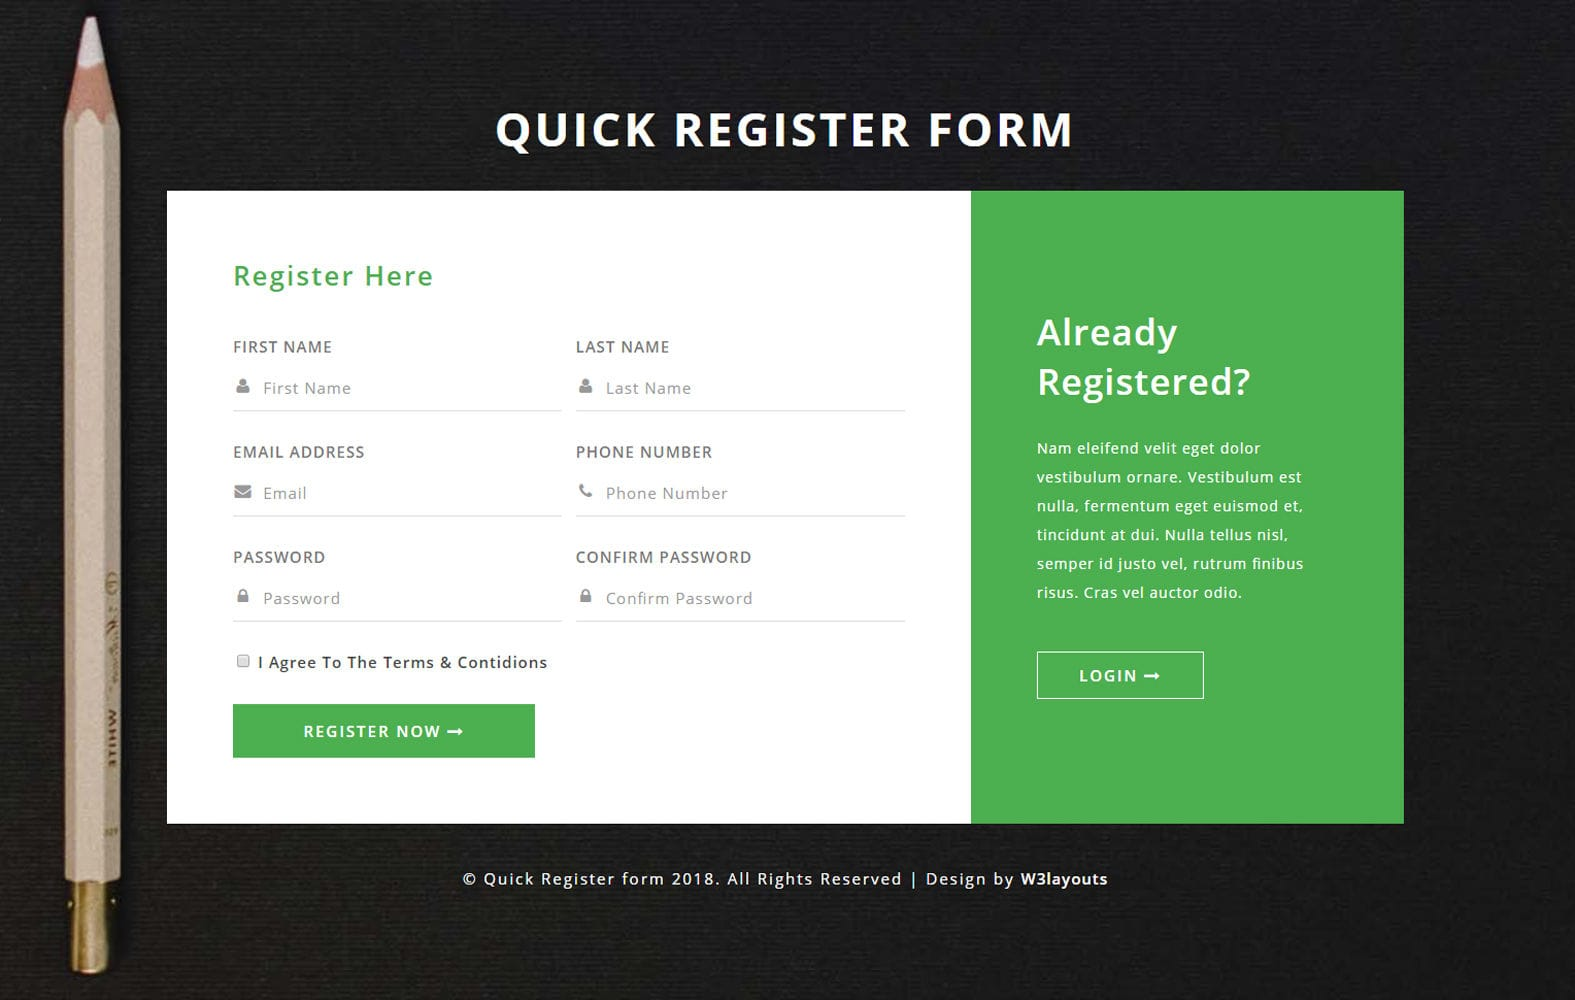 Quick Register Form